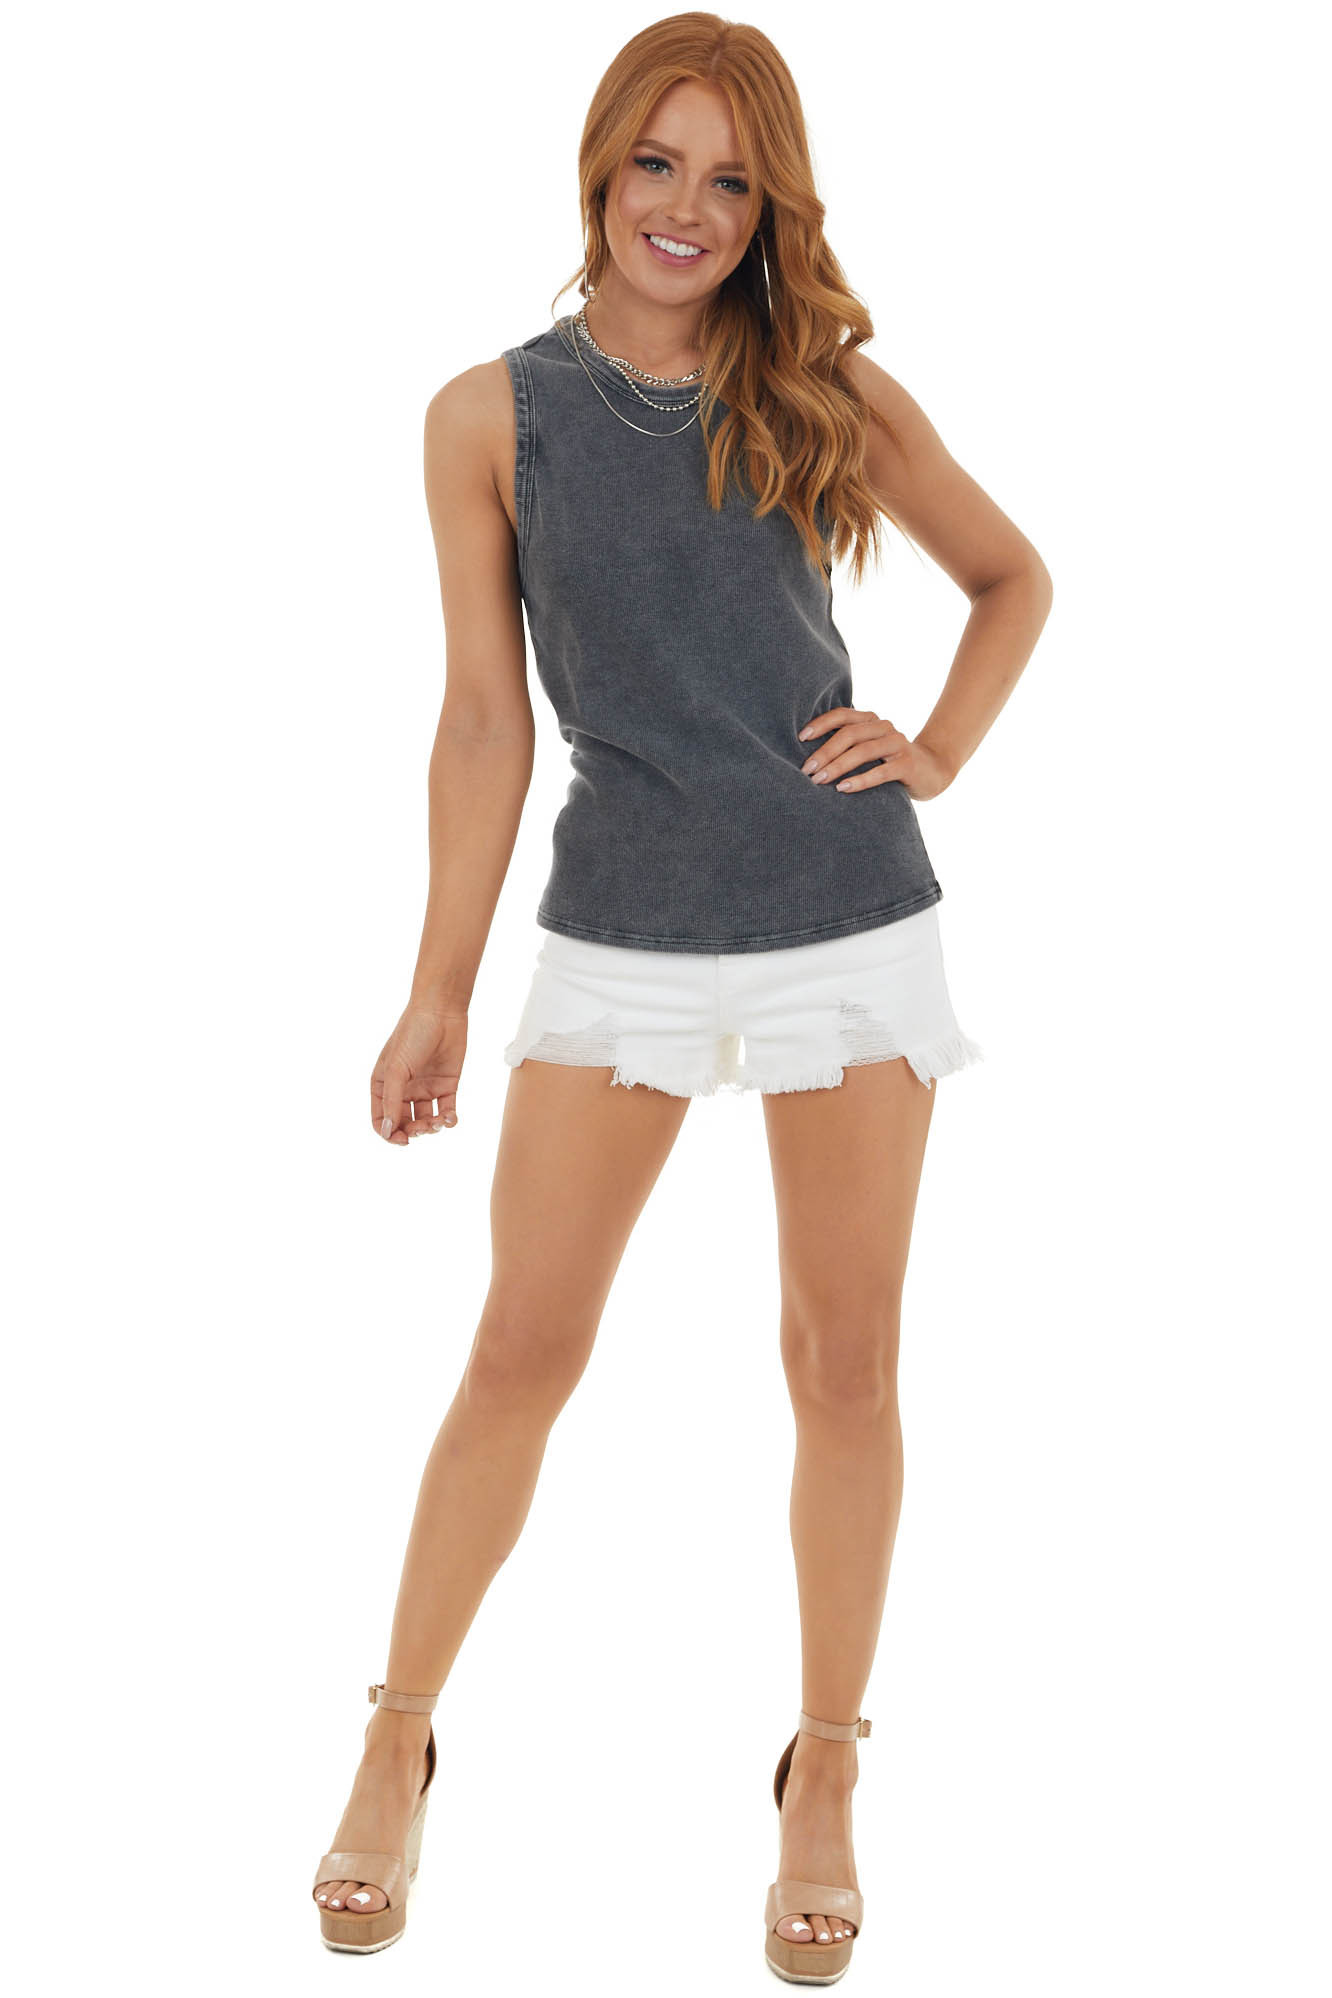 Stonewashed Charcoal Stretchy Ribbed Tank Top